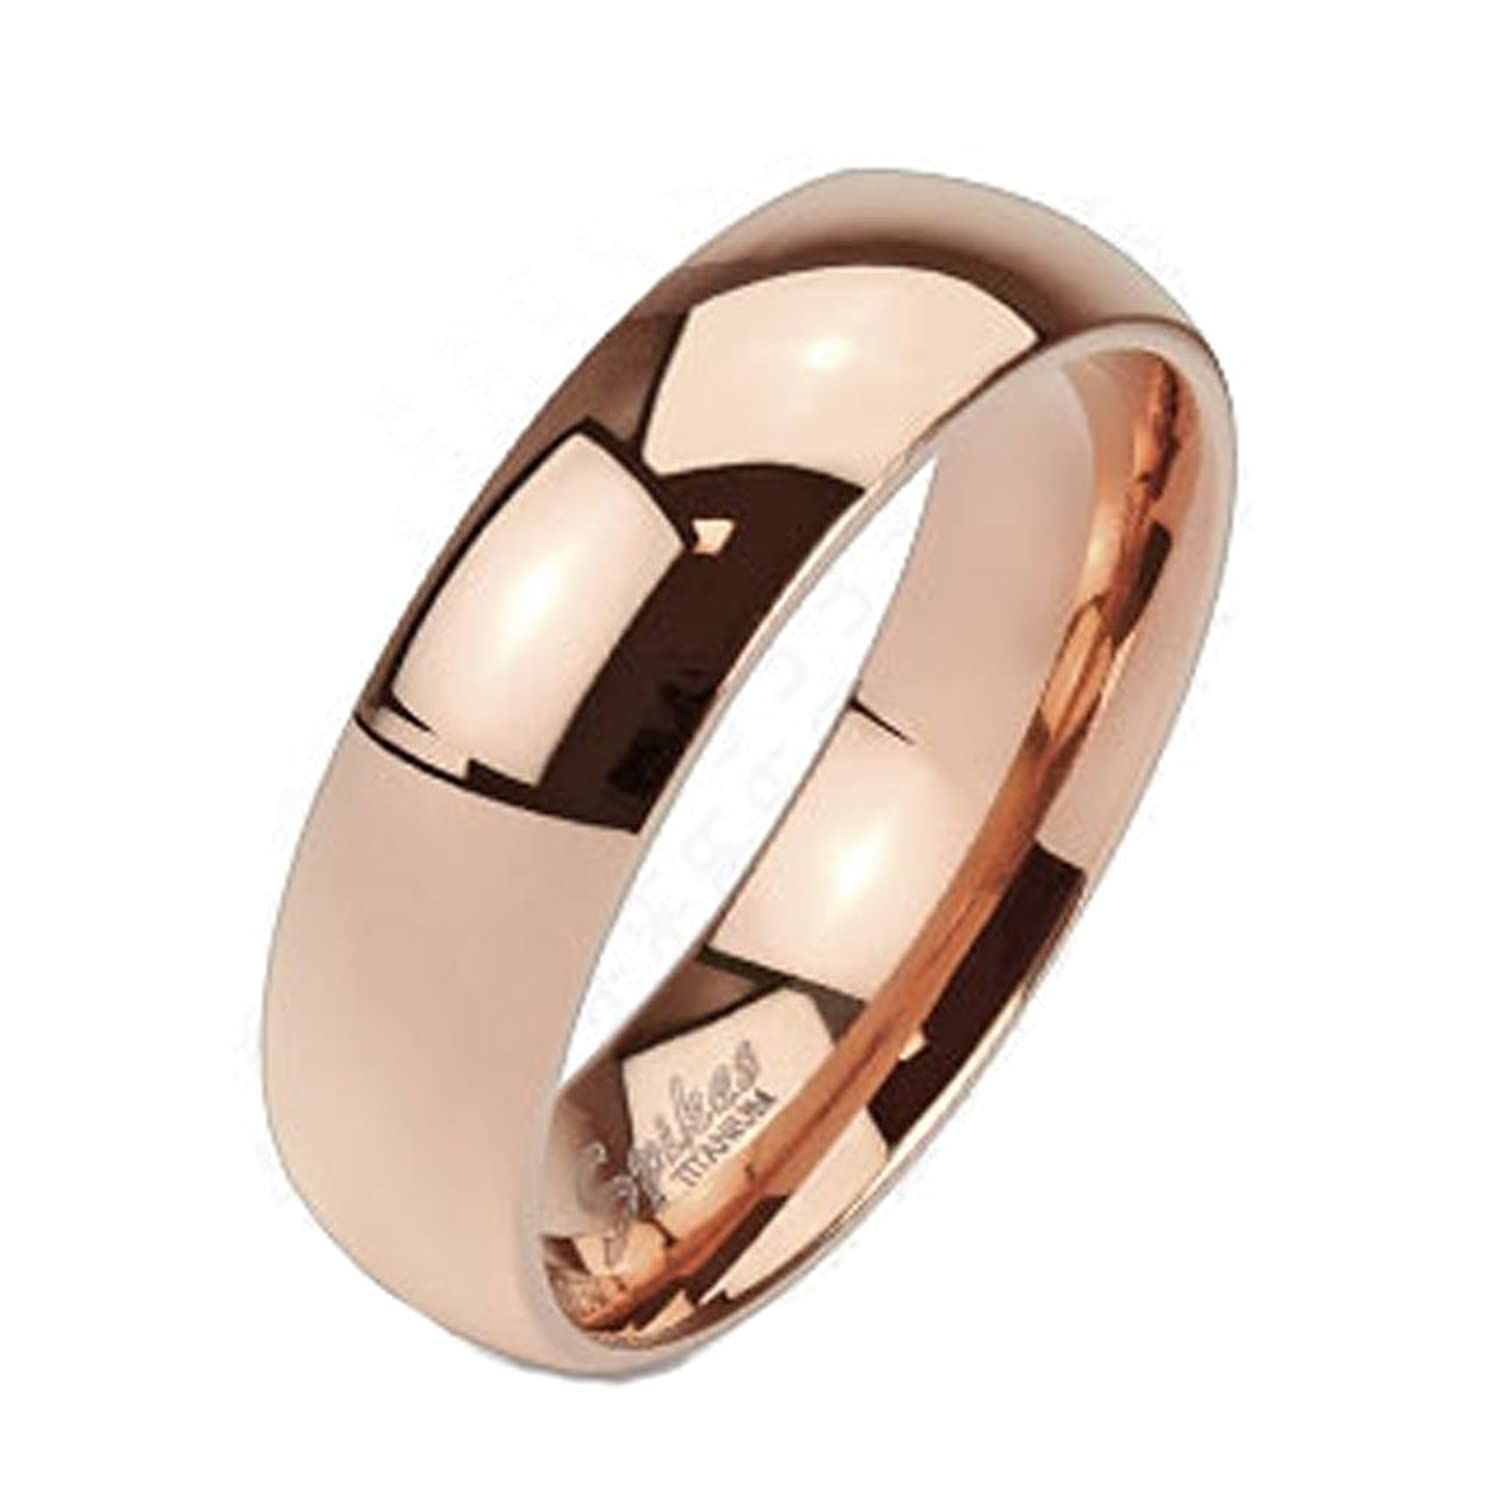 womens zm gold kay wedding band rose en mv bands s women kaystore